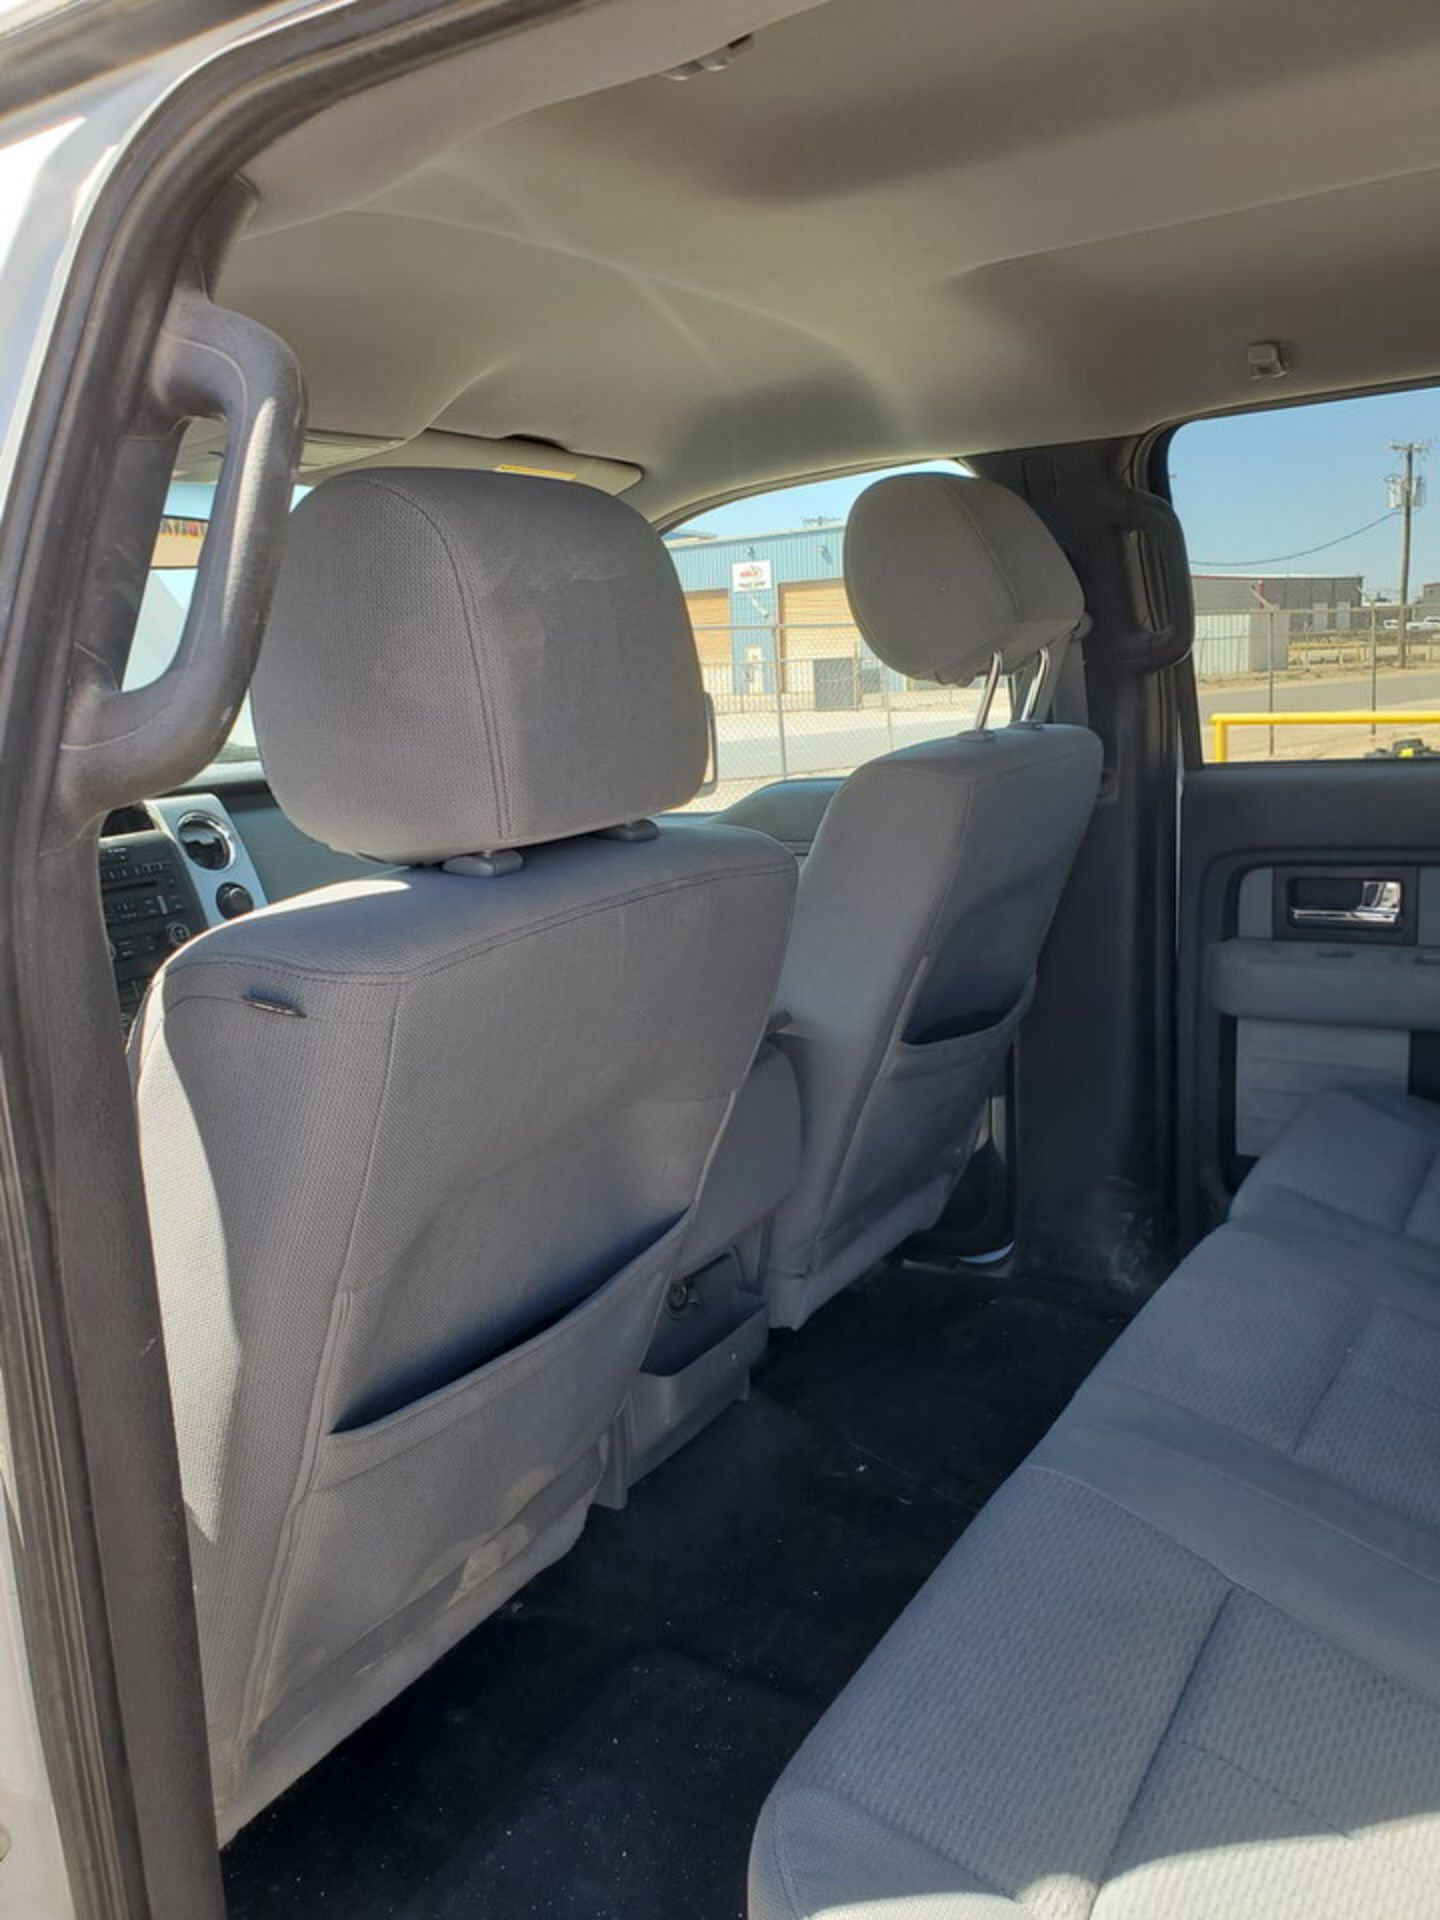 2013 Ford F150 Pickup Vin: 1FTFW1CF0DKF14097, TX Plates: CFT 3081, W/ 6.2L Engine - Image 10 of 19